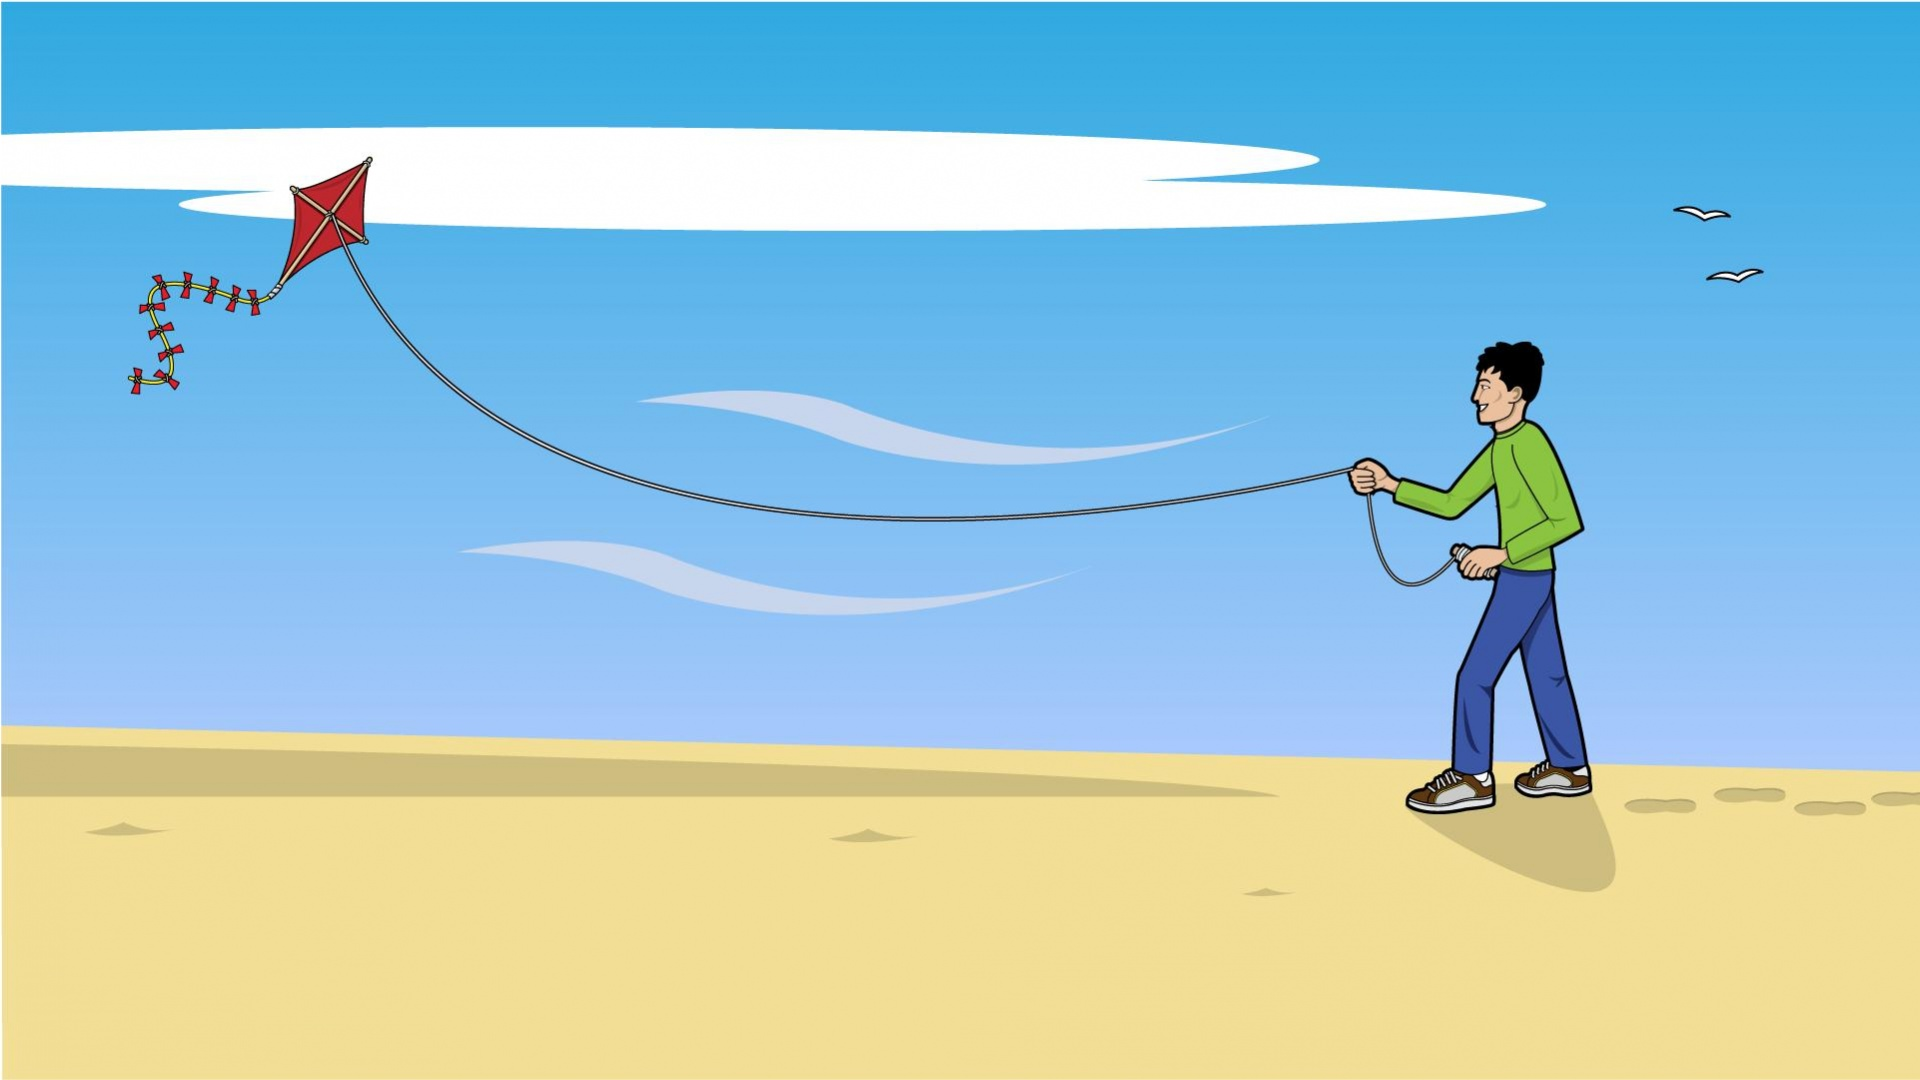 Boy Flying Kite Wallpapers   1920x1080   206544 1920x1080